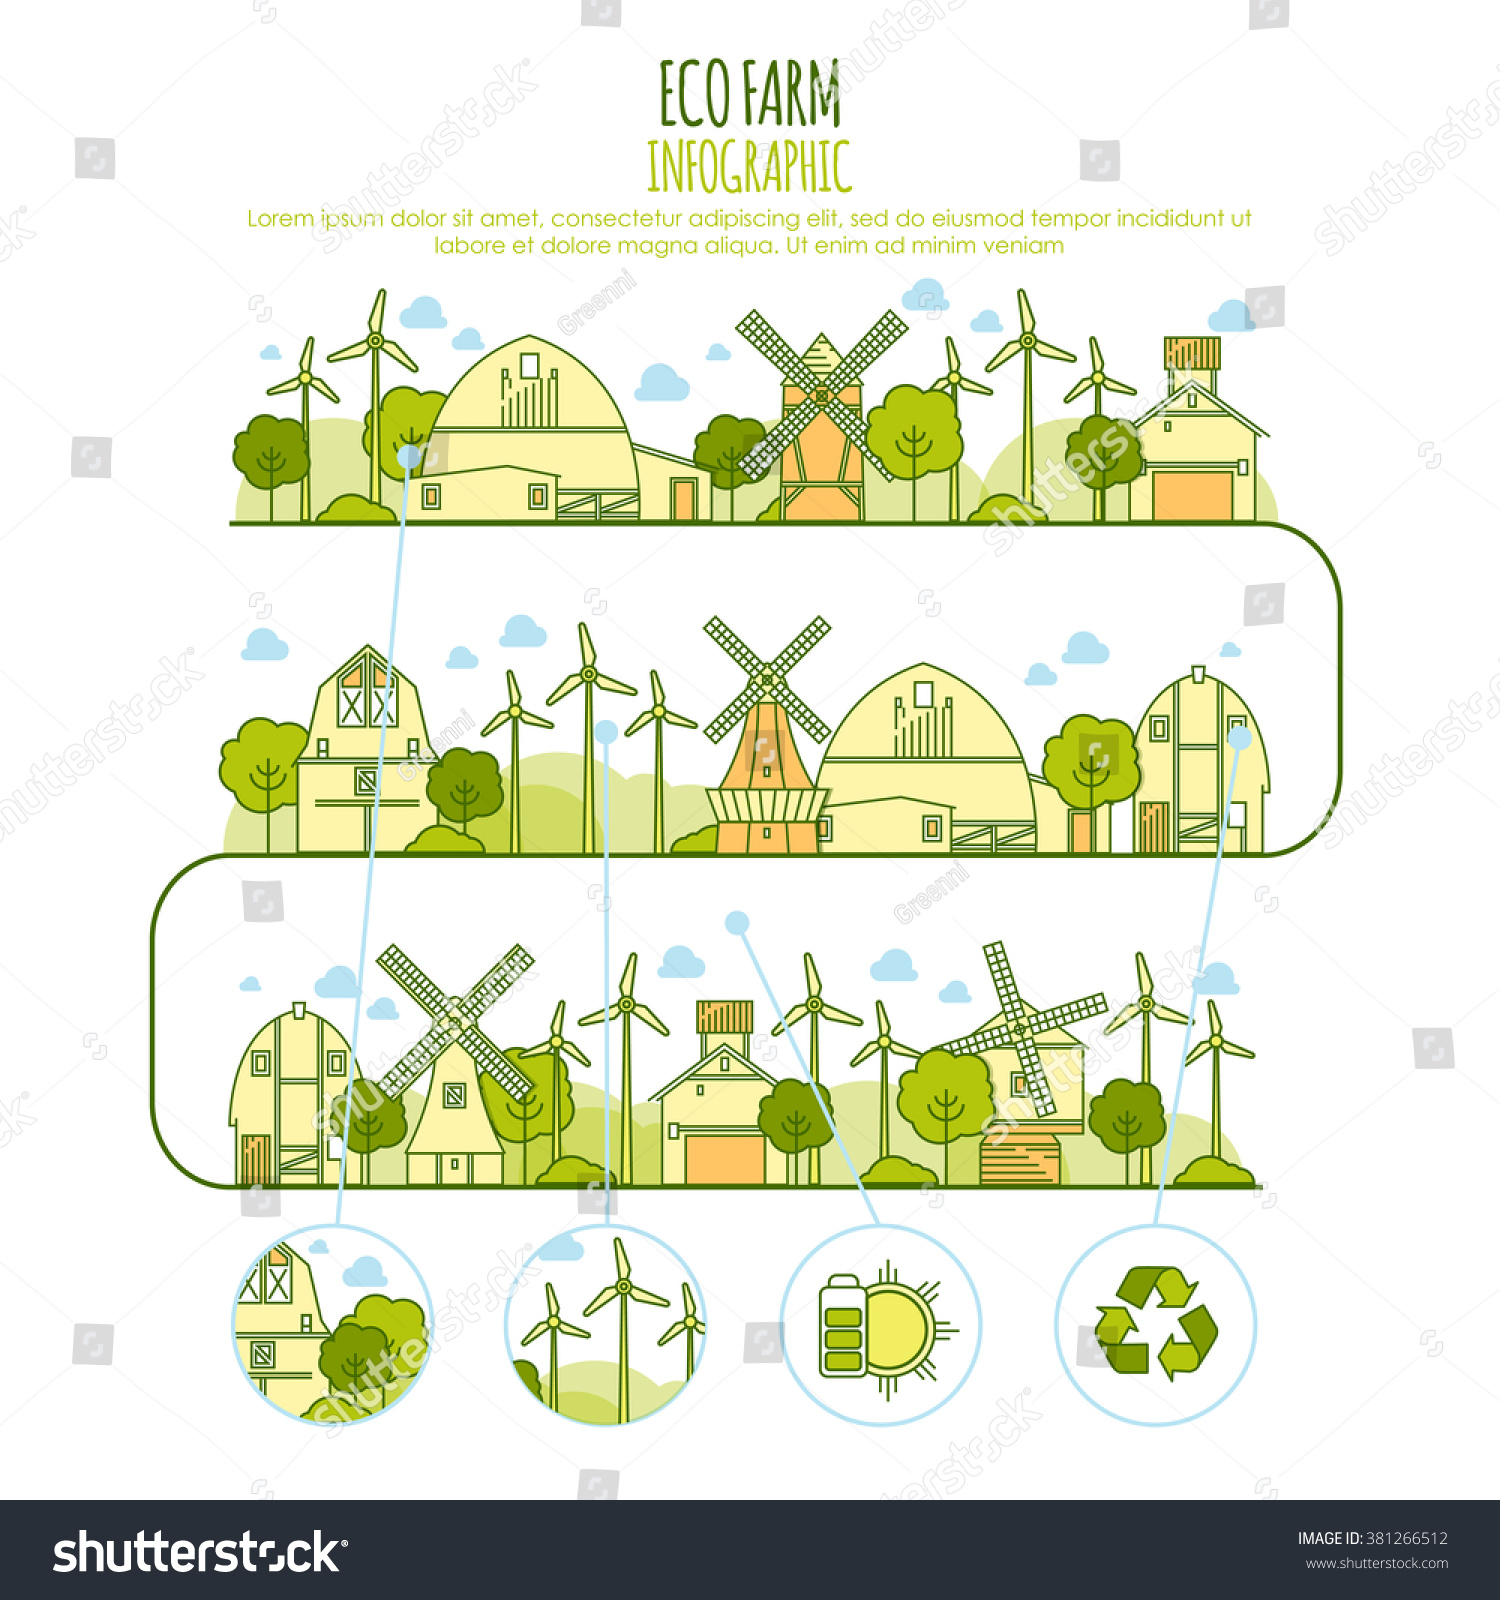 ecology farm infographic vector template with thin line icons of eco